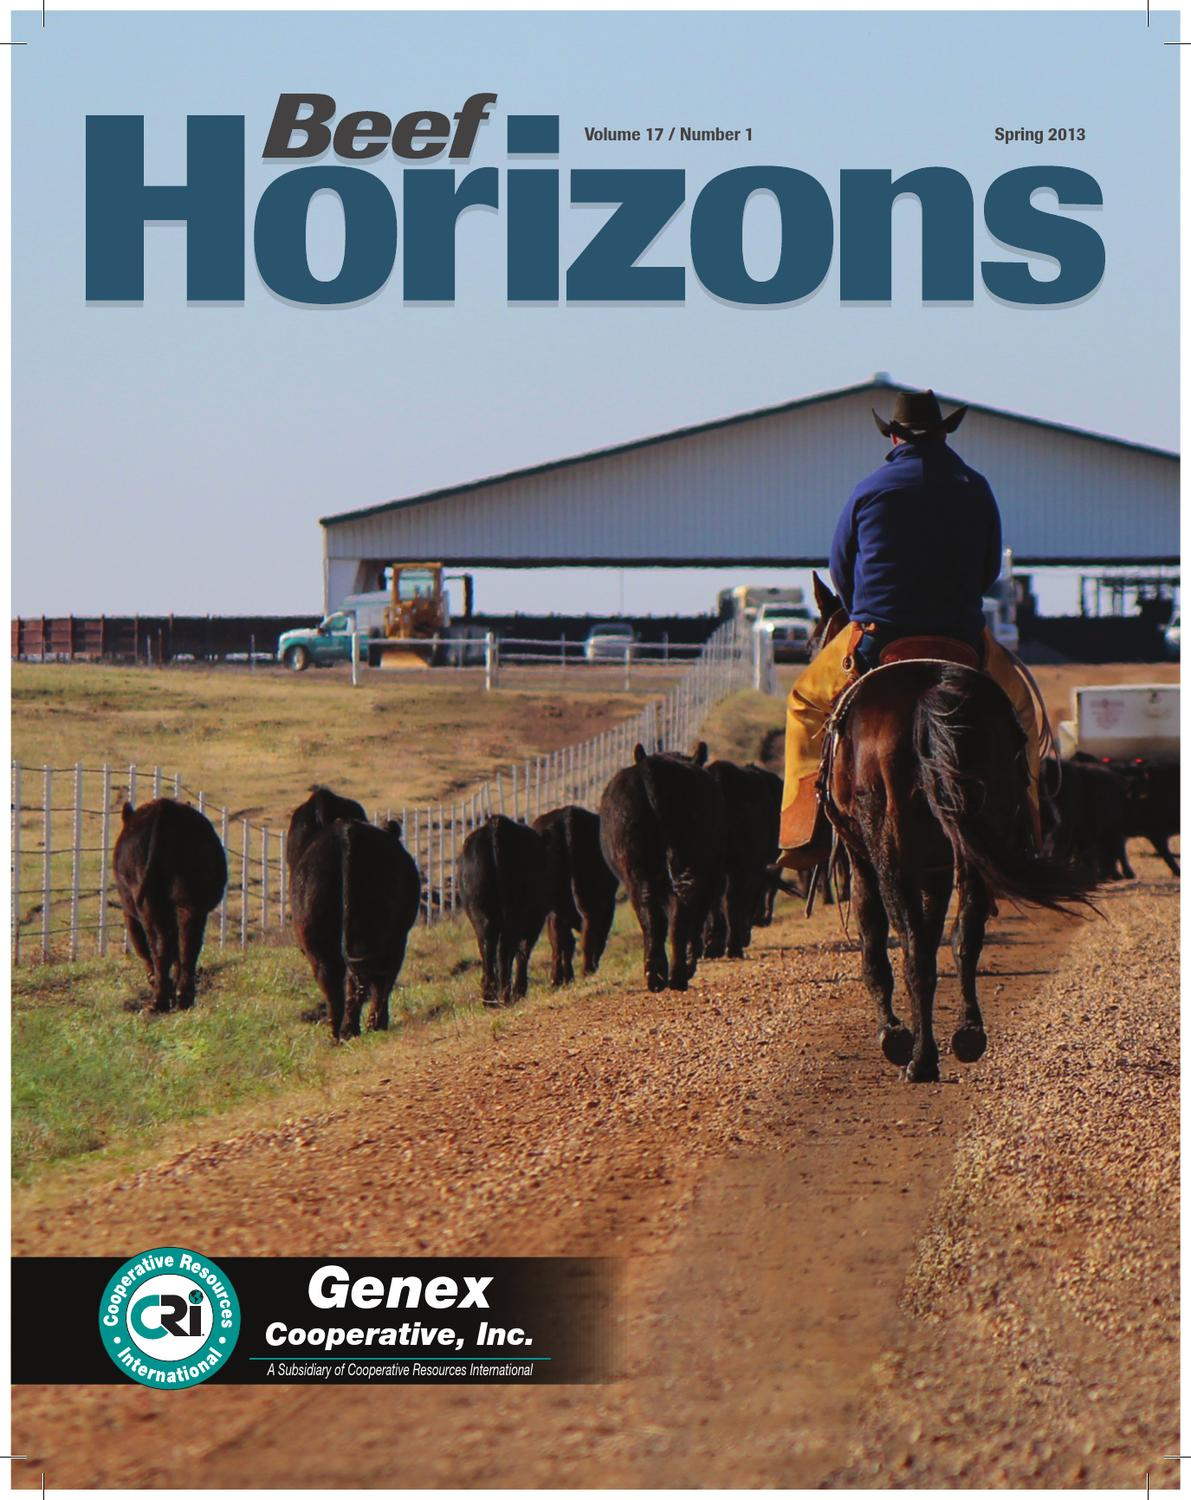 Cattle on feed report commentary on genesis